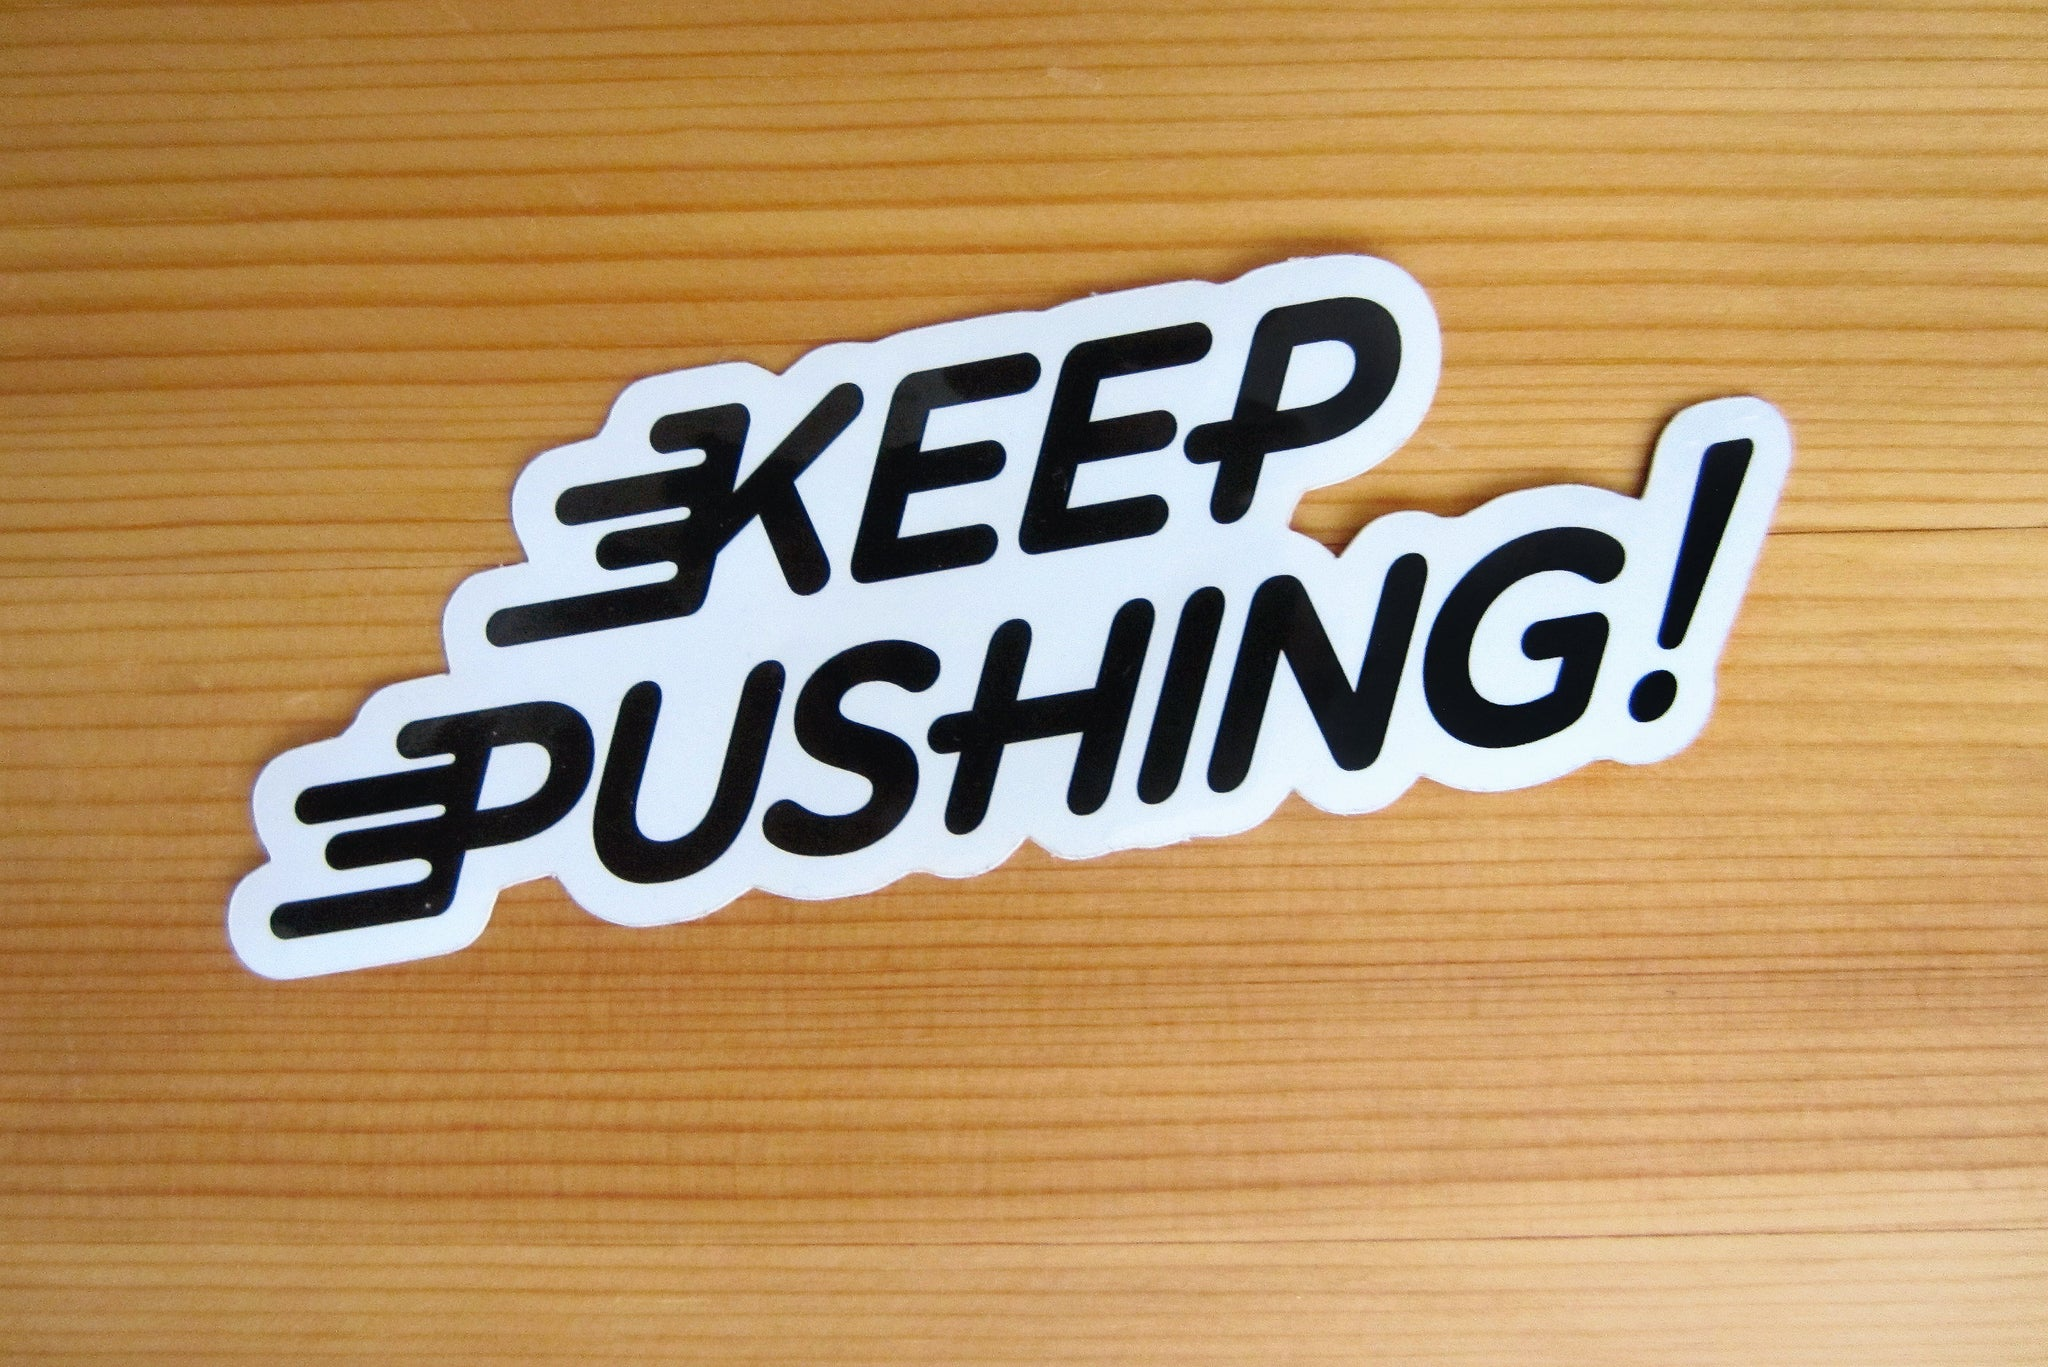 Keep Pushing! Glossy Vinyl Sticker